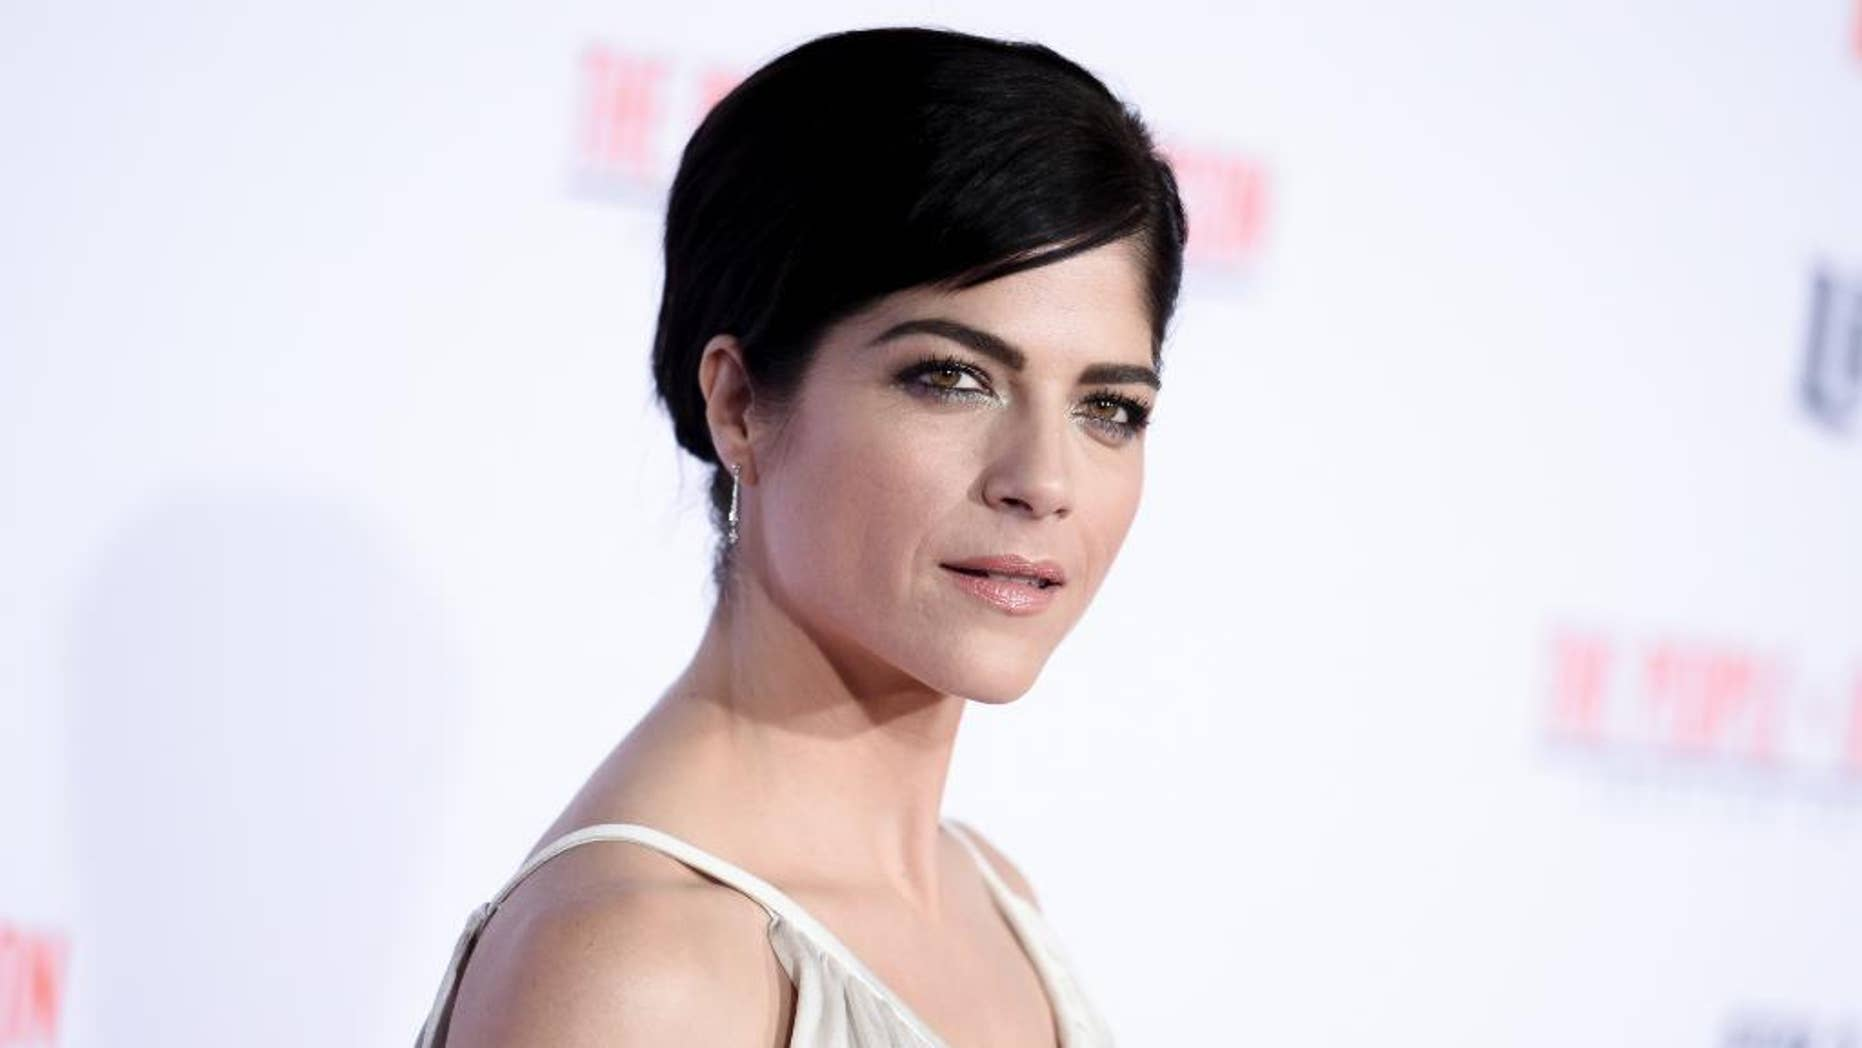 """FILE - In this Wednesday, Jan. 27, 2016 file photo, actress Selma Blair attends the LA Premiere of """"'American Crime Story: The People v. O.J. Simpson"""" at Westwood Village Theatre on in Los Angeles. Blair is apologizing for her outburst on a flight. She said in a statement to Vanity Fair on Tuesday, June 21, that she mixed alcohol with medication which caused her to black out and make statements that she regrets on a Monday flight from Cancun to Los Angeles. (Photo by Richard Shotwell/Invision/AP, File)"""